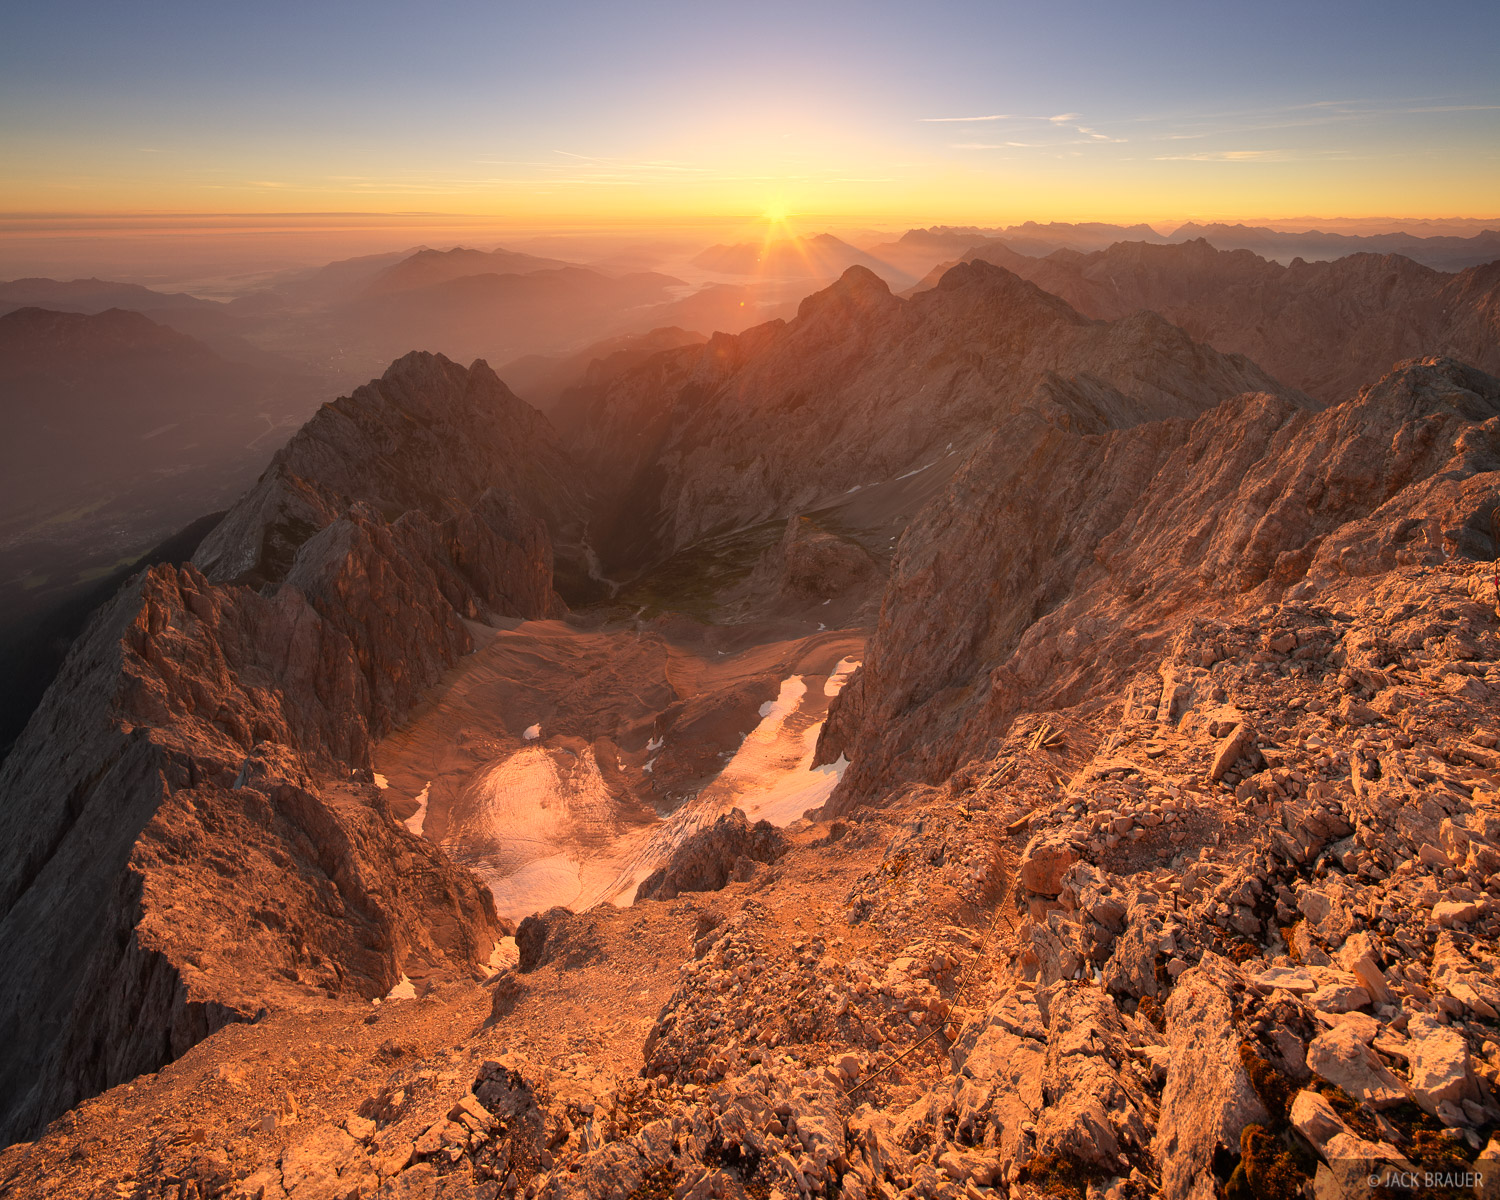 Zugspitze, Wettersteingebirge, Germany, sunrise, summit, Alps, photo